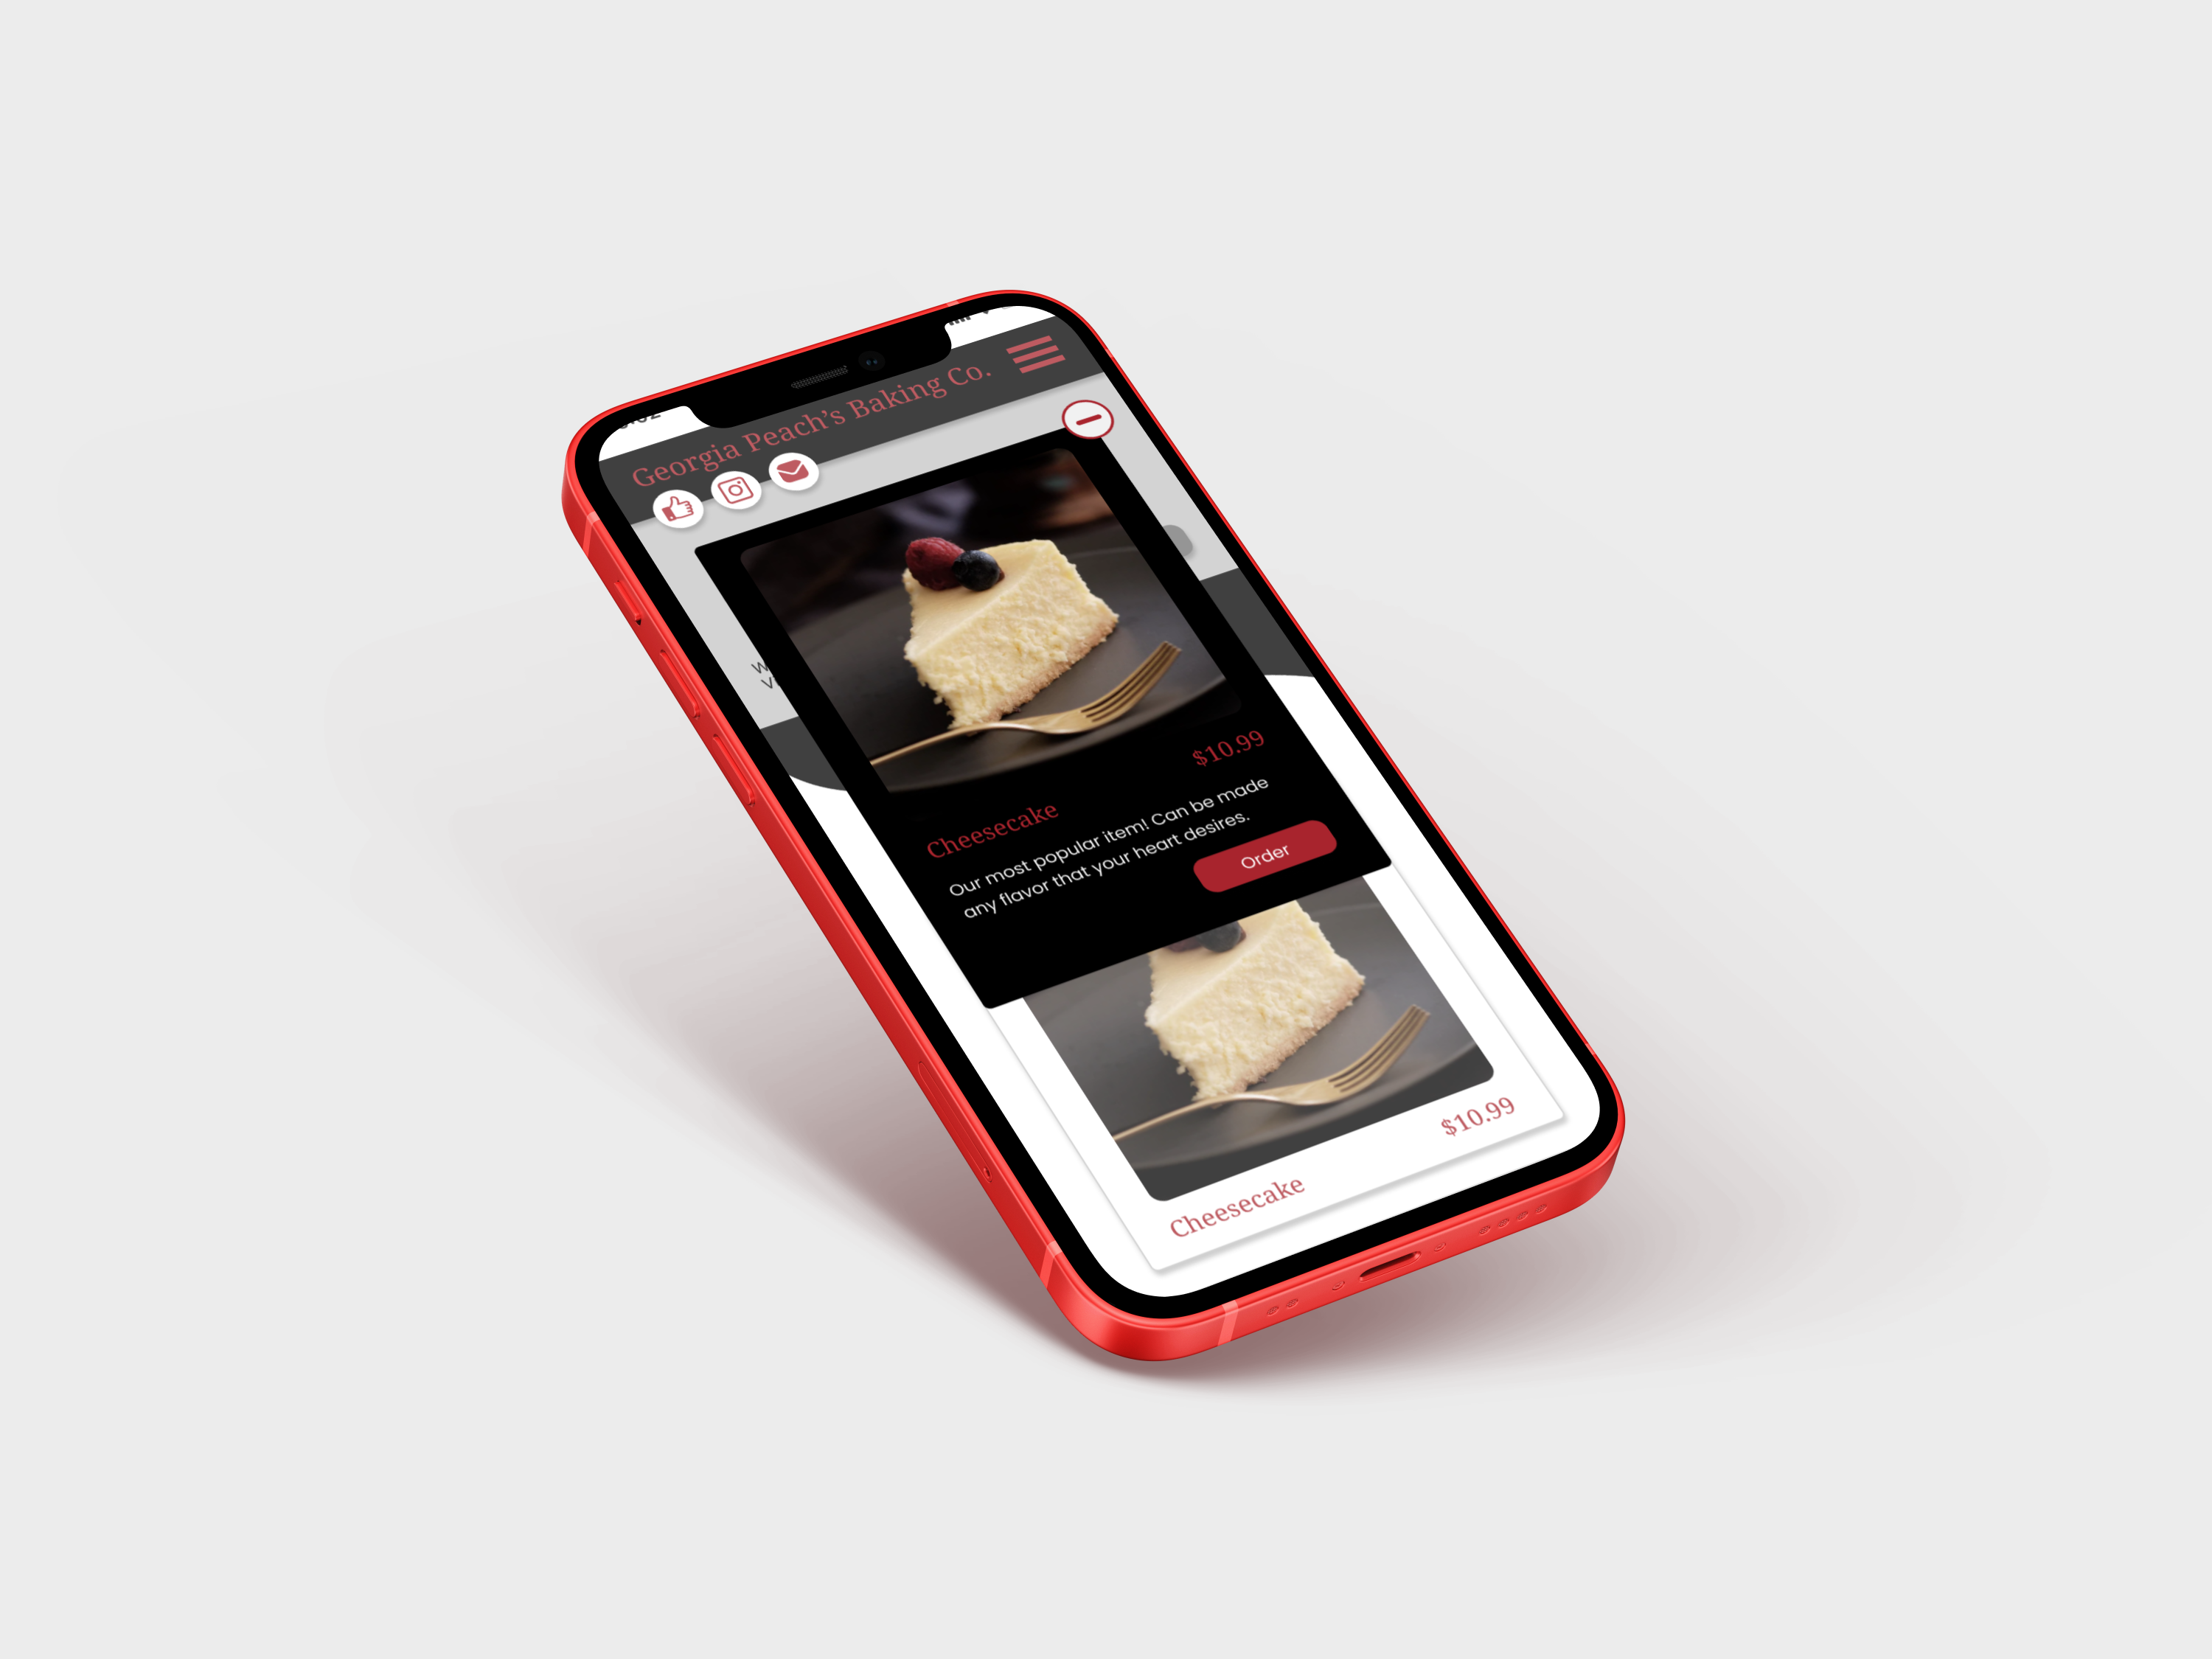 Red iPhone showing the item details page